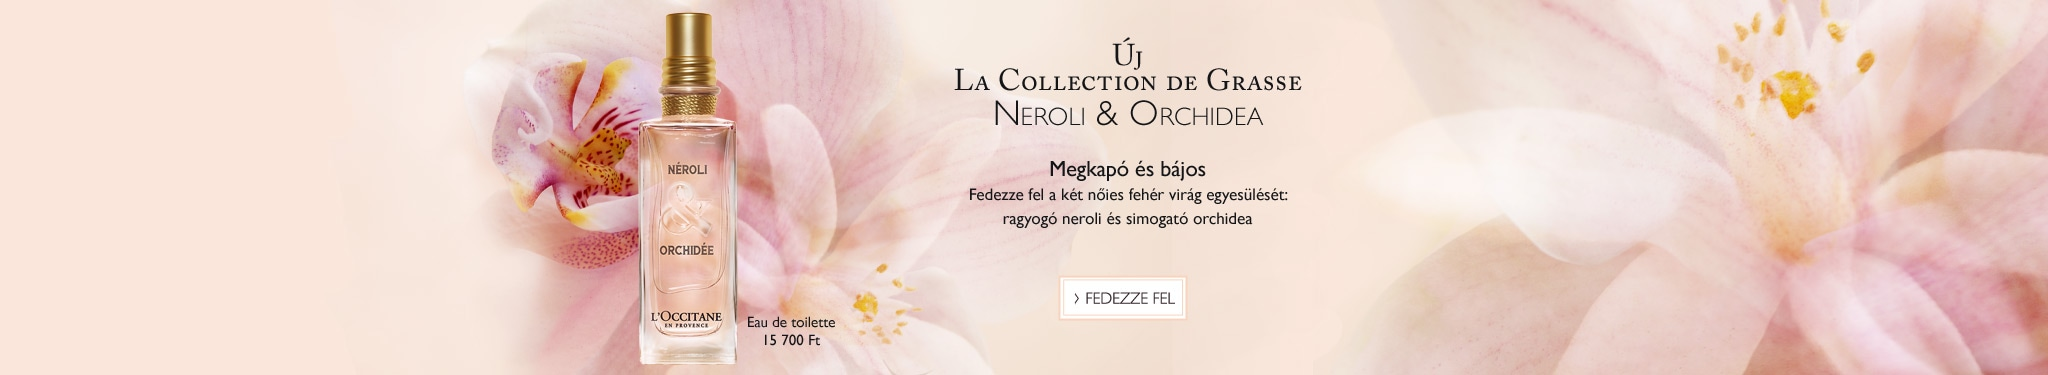 Új La Collection de Grasse Neroli & Orchidea